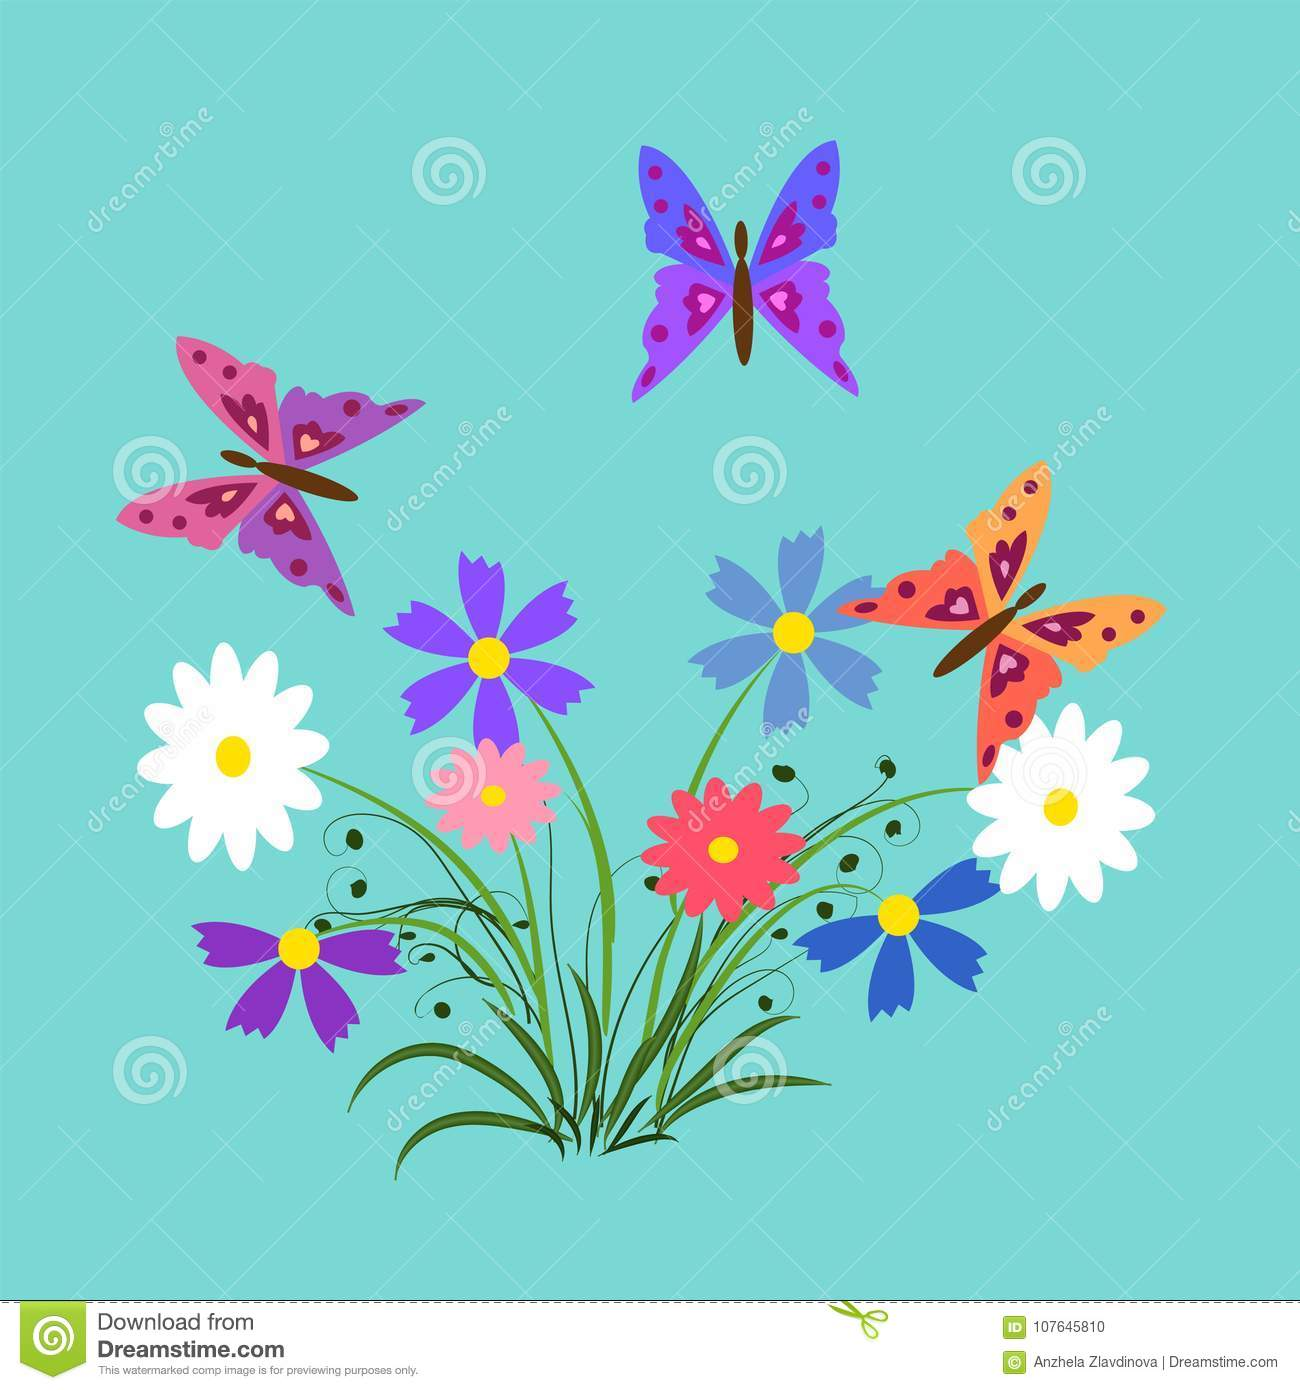 The Flowers And Butterflies Illustration Elements For Design